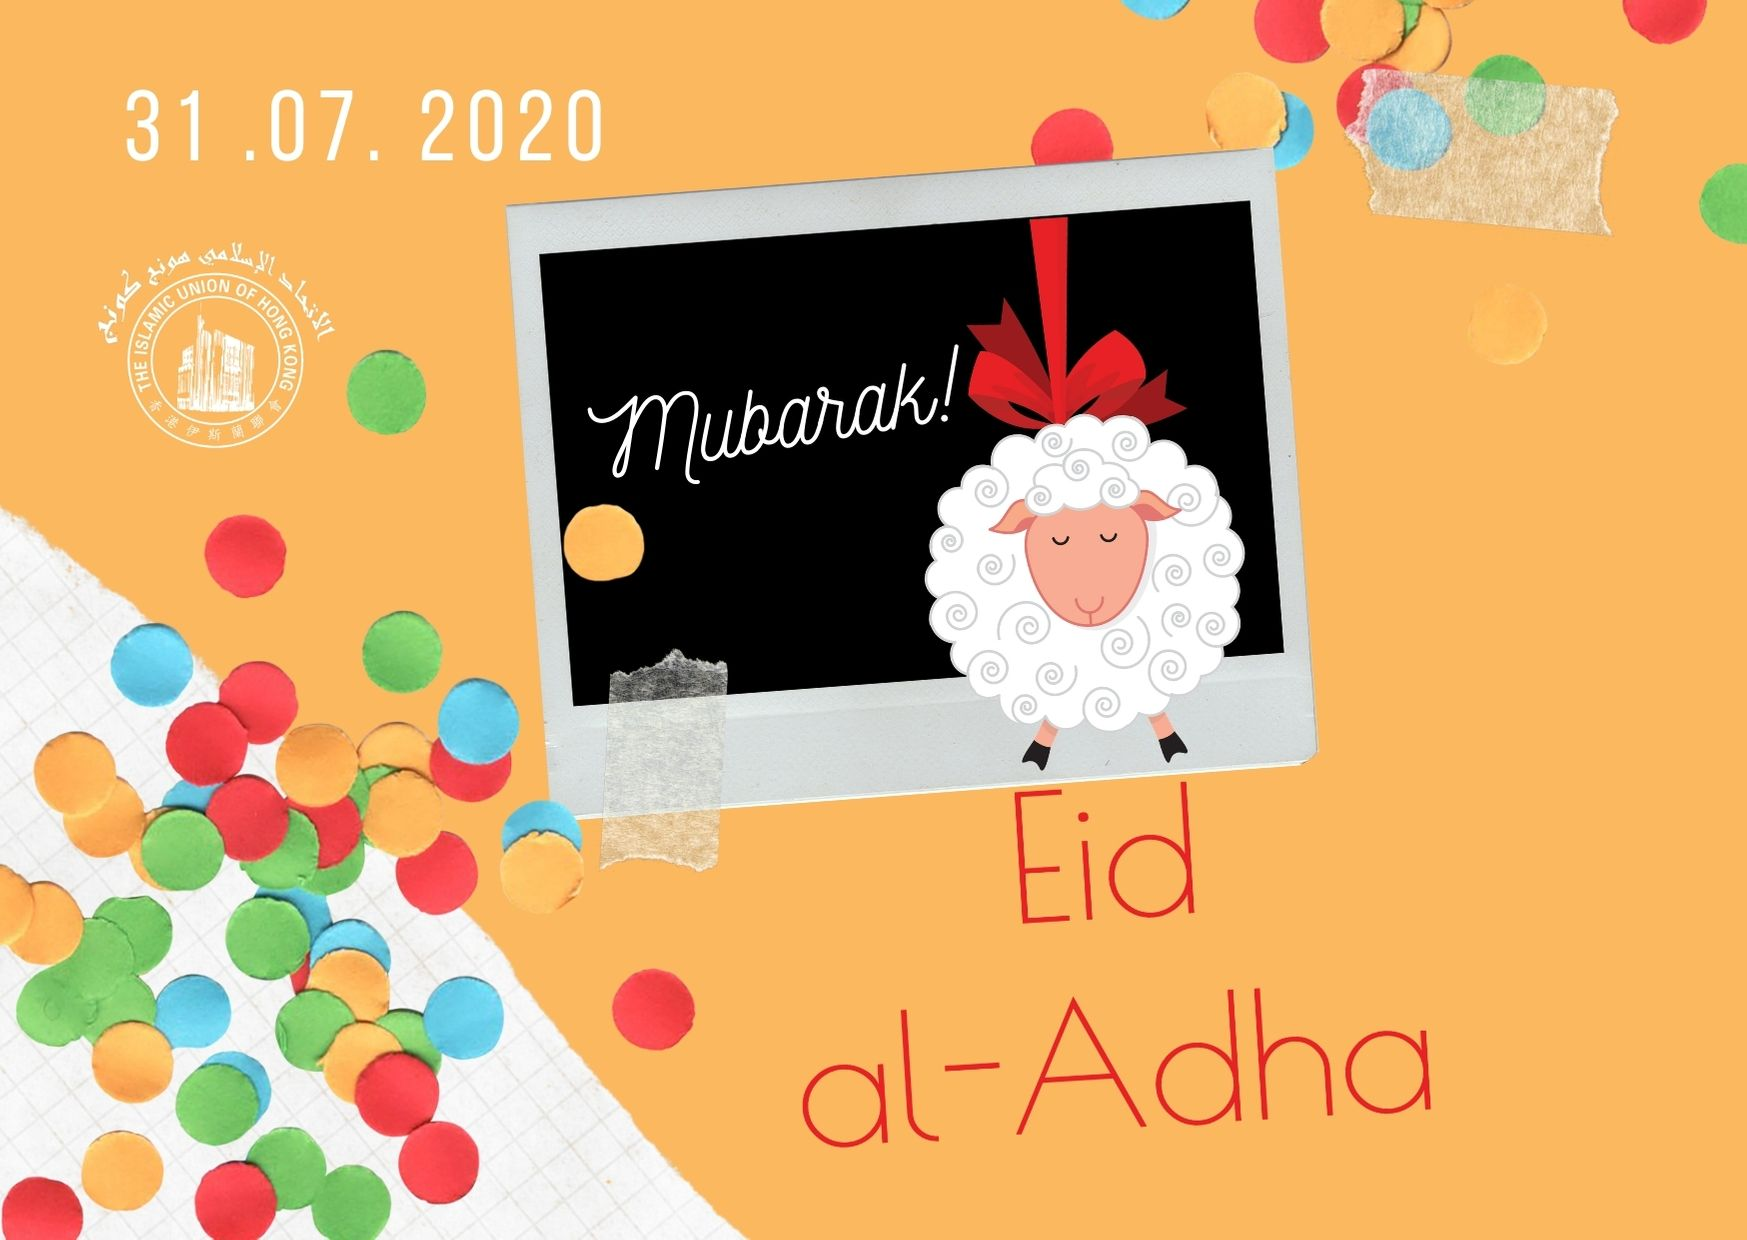 Happy Eid-ul-Adha 1441 / 2020